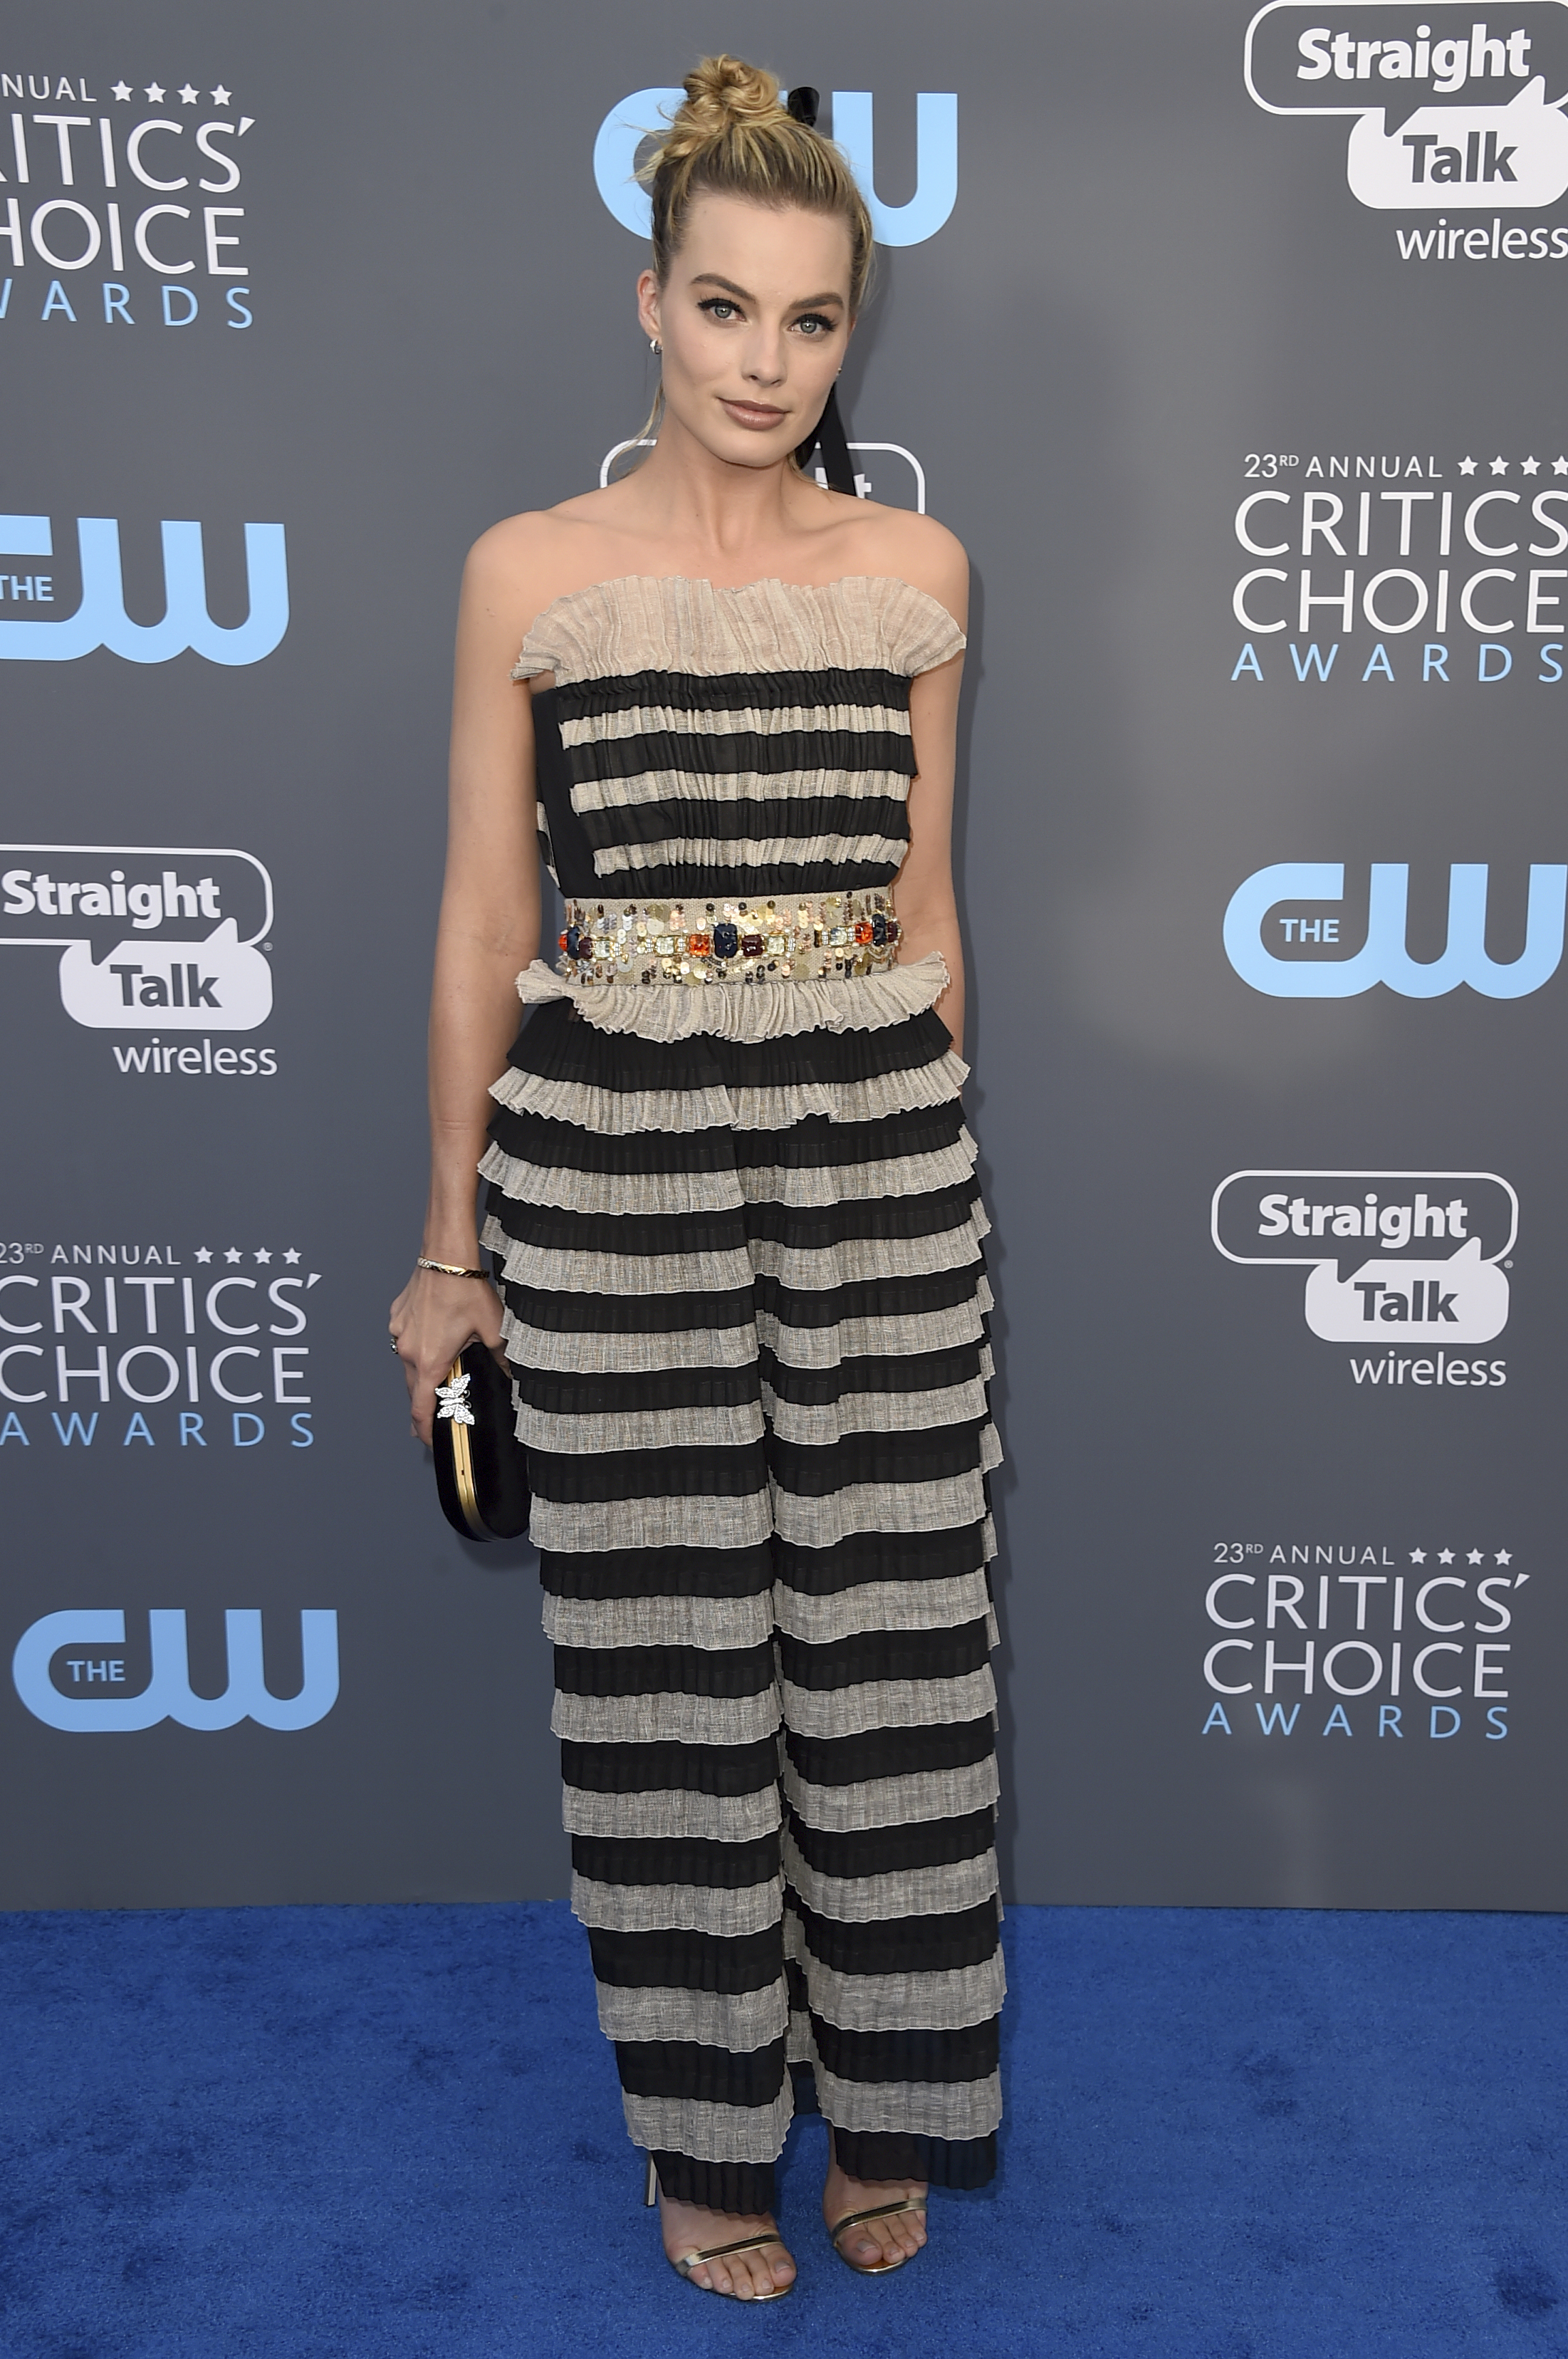 <div class='meta'><div class='origin-logo' data-origin='AP'></div><span class='caption-text' data-credit='Jordan Strauss/Invision/AP'>Margot Robbie arrives at the 23rd annual Critics' Choice Awards at the Barker Hangar on Thursday, Jan. 11, 2018, in Santa Monica, Calif.</span></div>